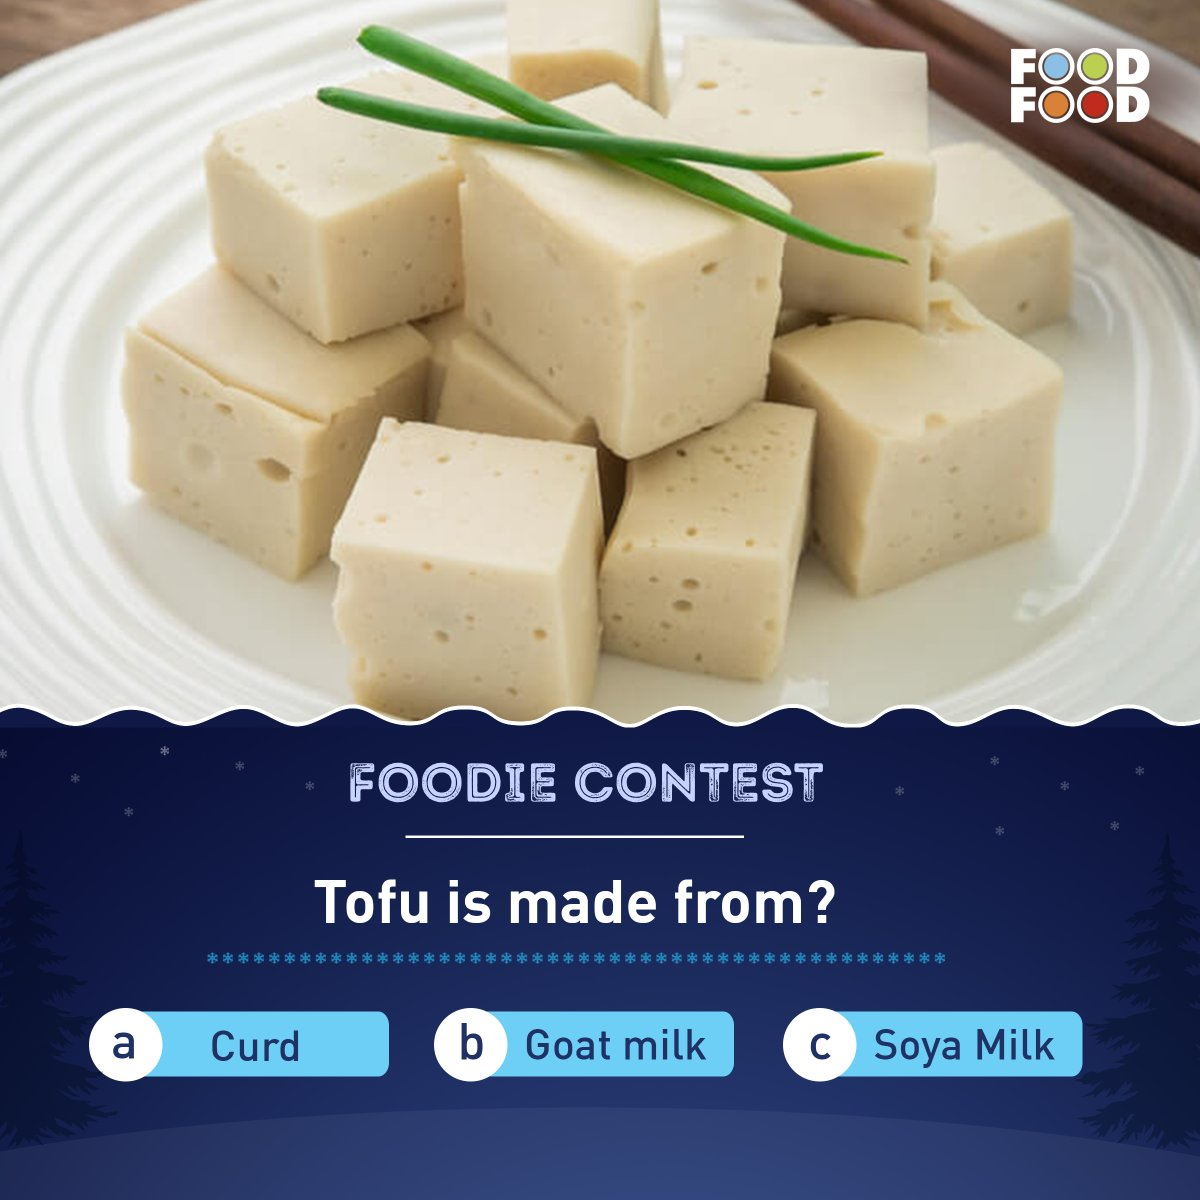 #ContestAlert: Participate and stand a chance to win exclusive prizes: ✔️ Answer the question & use hashtag #FoodFoodContest & #FoodieContest ✔️ Tag atleast 3 friends and share the contest post ✔️ Follow #FoodFood ✔️ Retweet our last video  #TuesdayTrivia #Contest #Giveaway